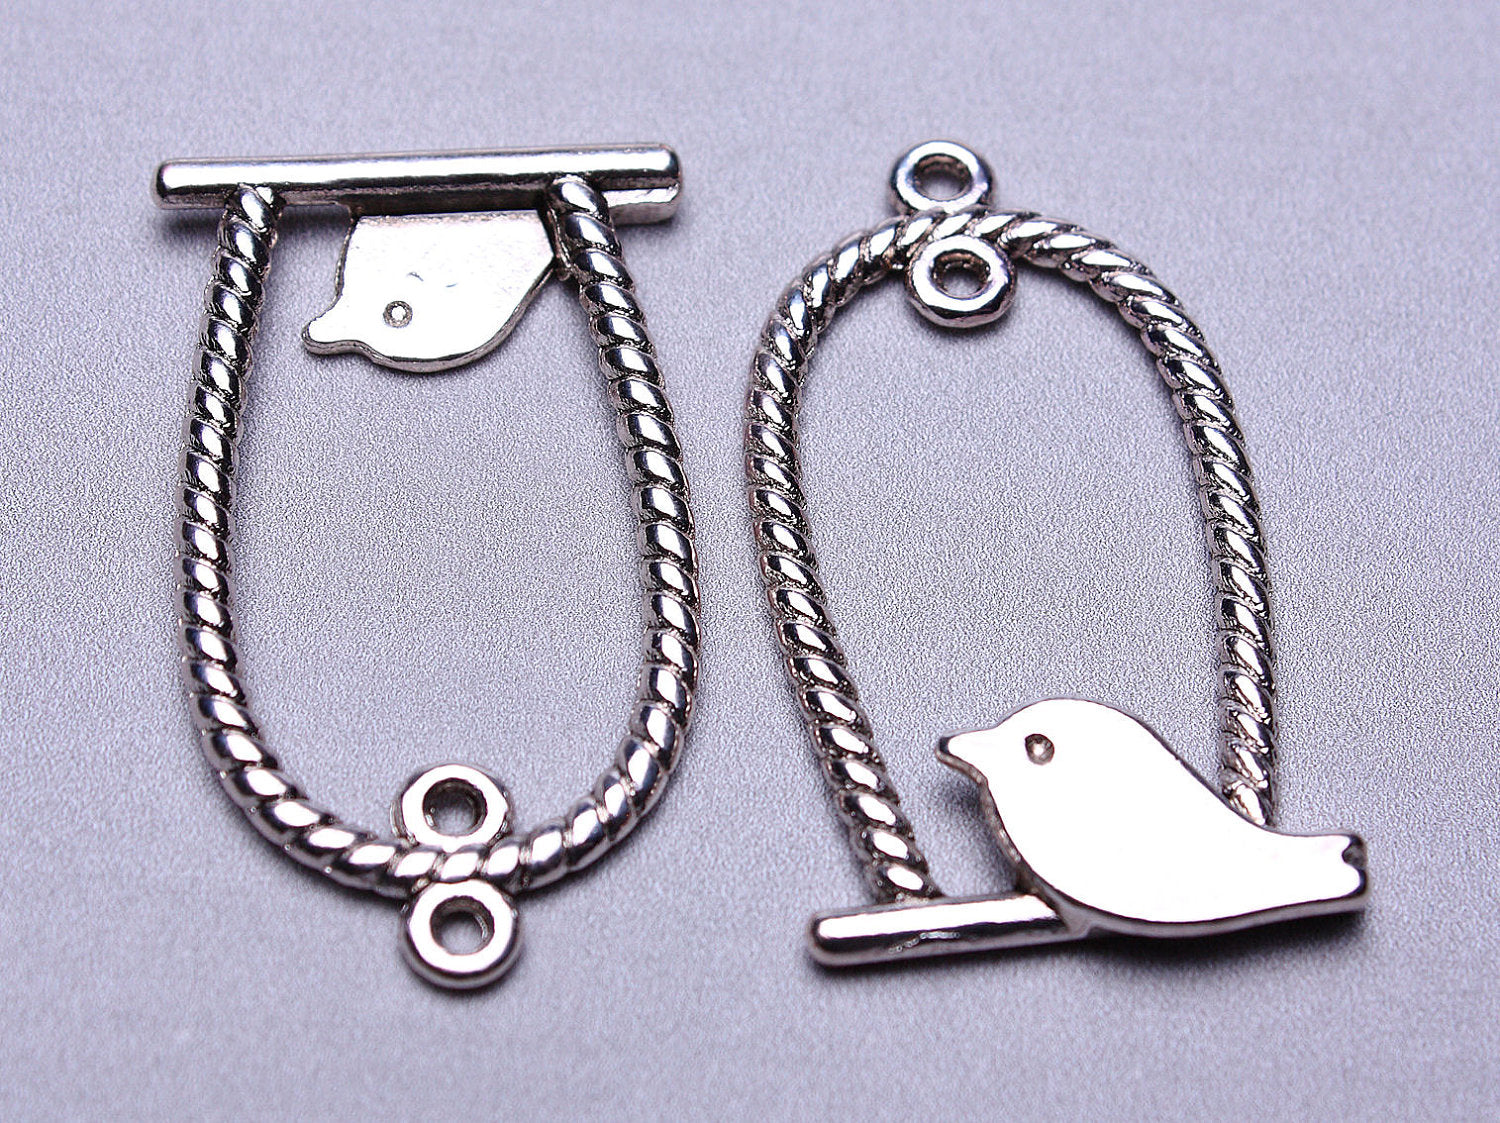 Bird in a cage charm - Bird pendant - silver color - 8 pieces (538)